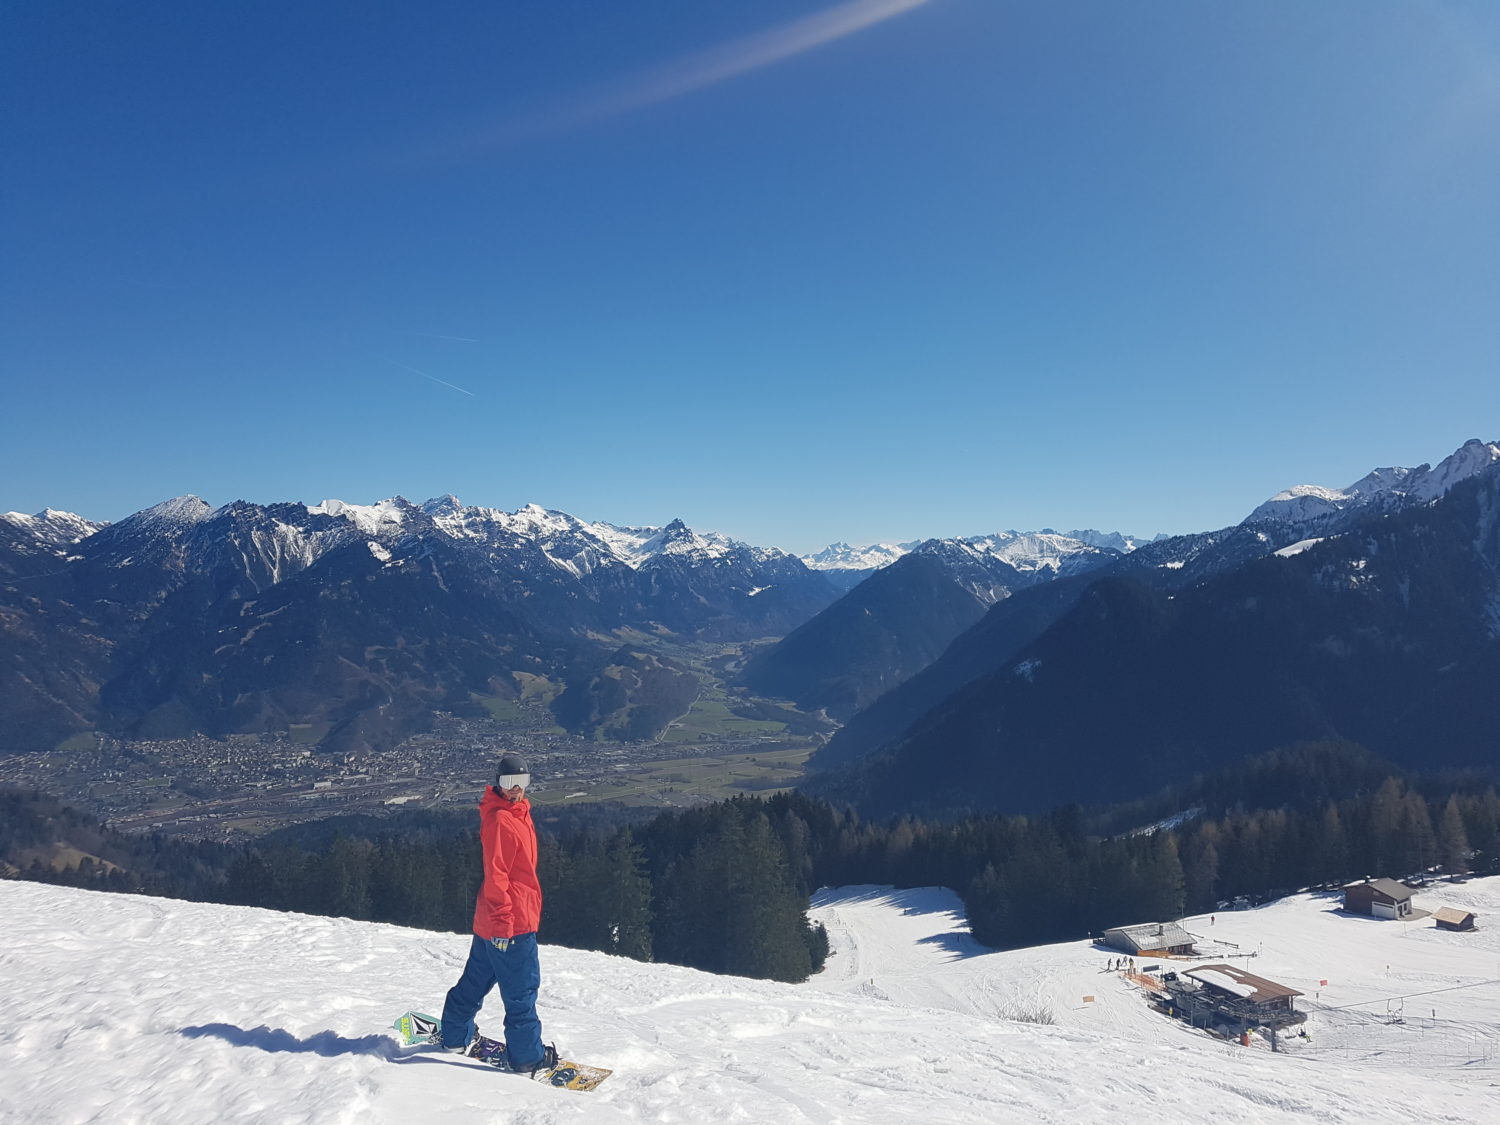 Simon enjoying the View - Bludenz in the Background